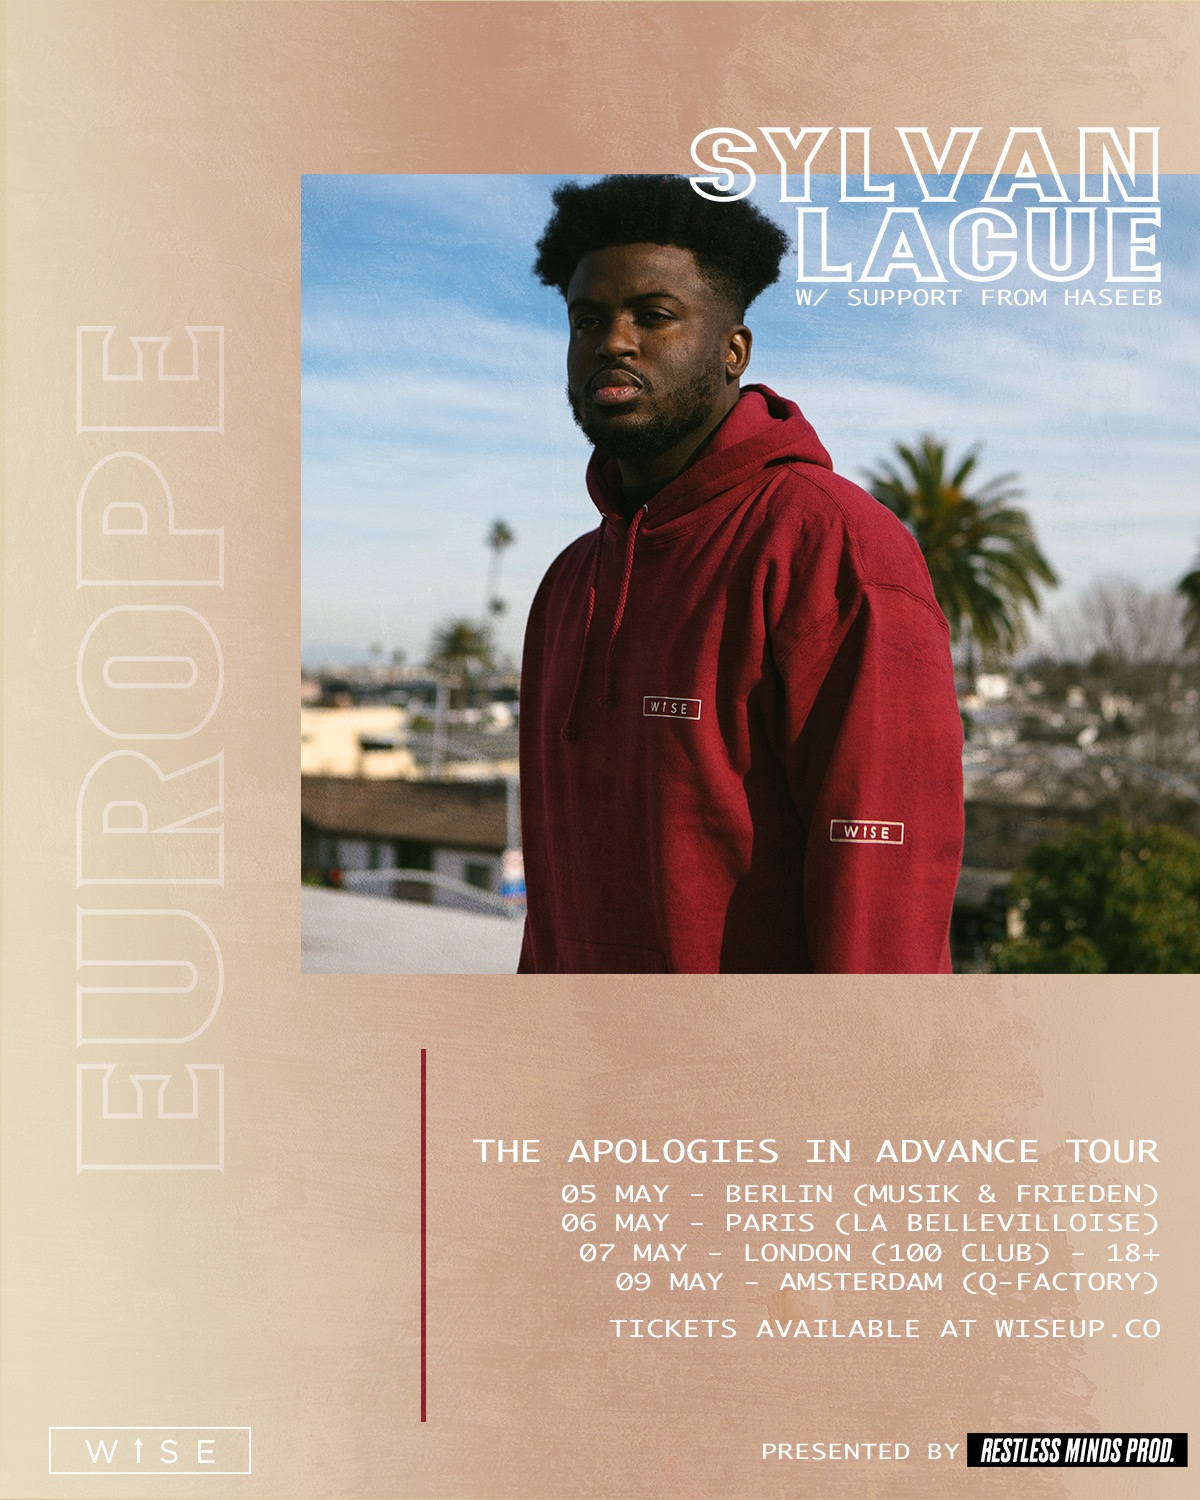 HASEEB on tour with Sylvan LaCue in Europe, May 2019. Click for tickets.